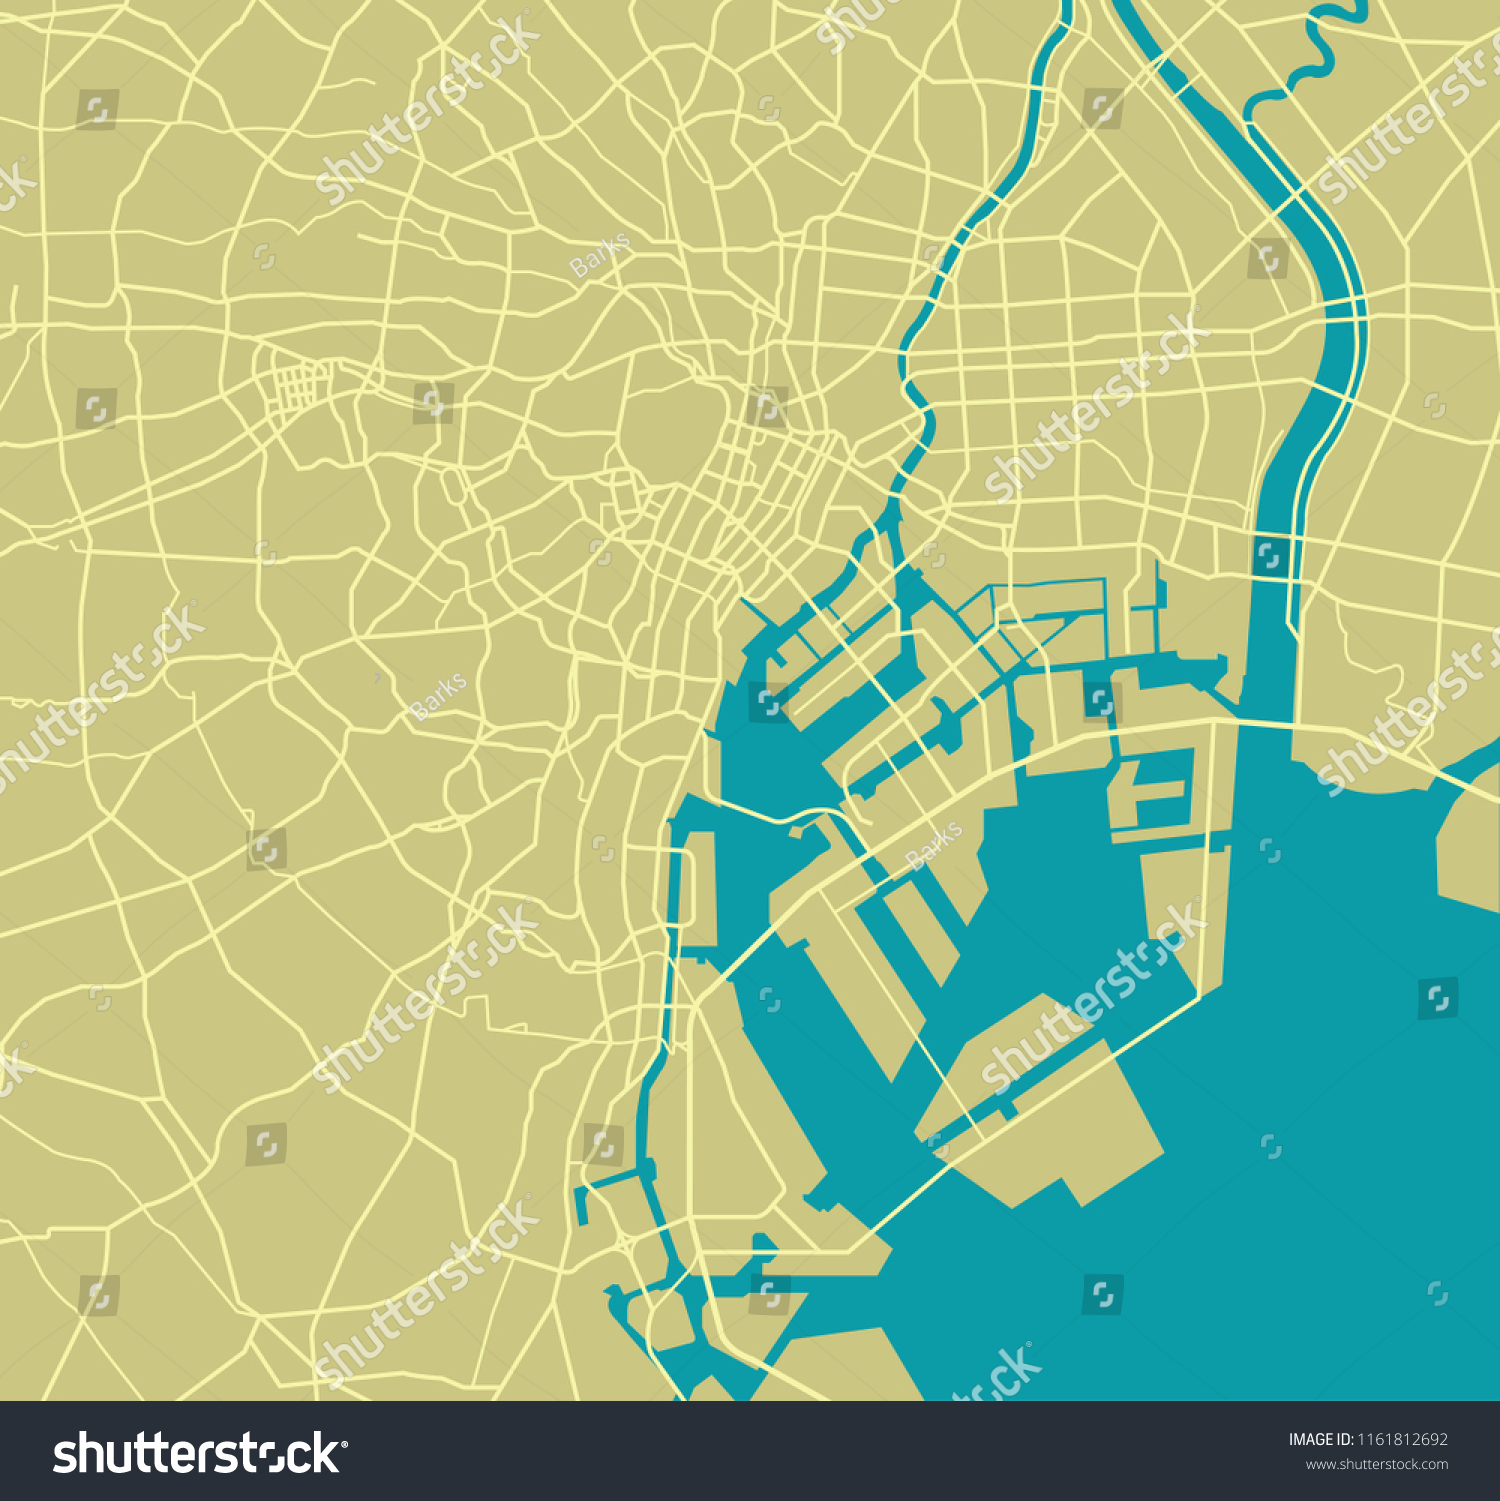 Tokyo Bay Area Road Map Stock Vector Royalty Free 1161812692 California highway history as seen through highway and planning maps. shutterstock